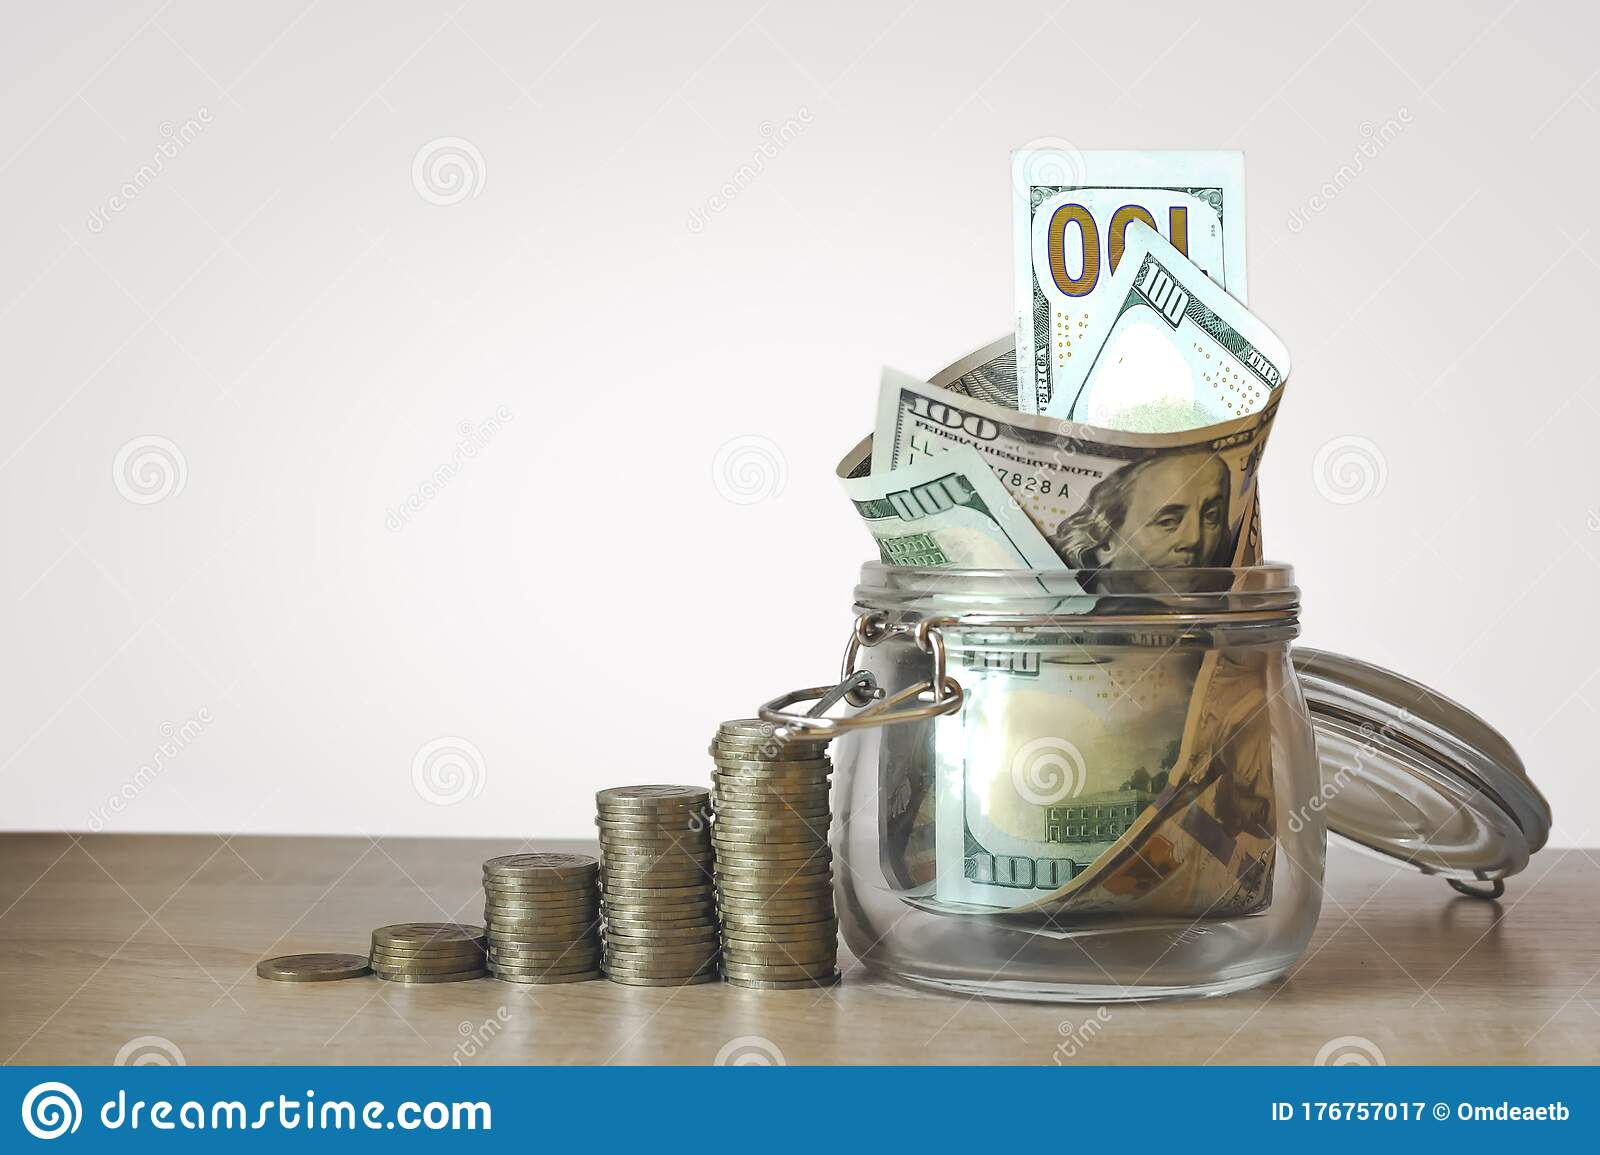 Coins Stack And Us Dollar Bills In The Glass Jar Concept Of Money Saving Financial Savings Money And Income Investment Ideas Stock Image Image Of Change Gold 176757017